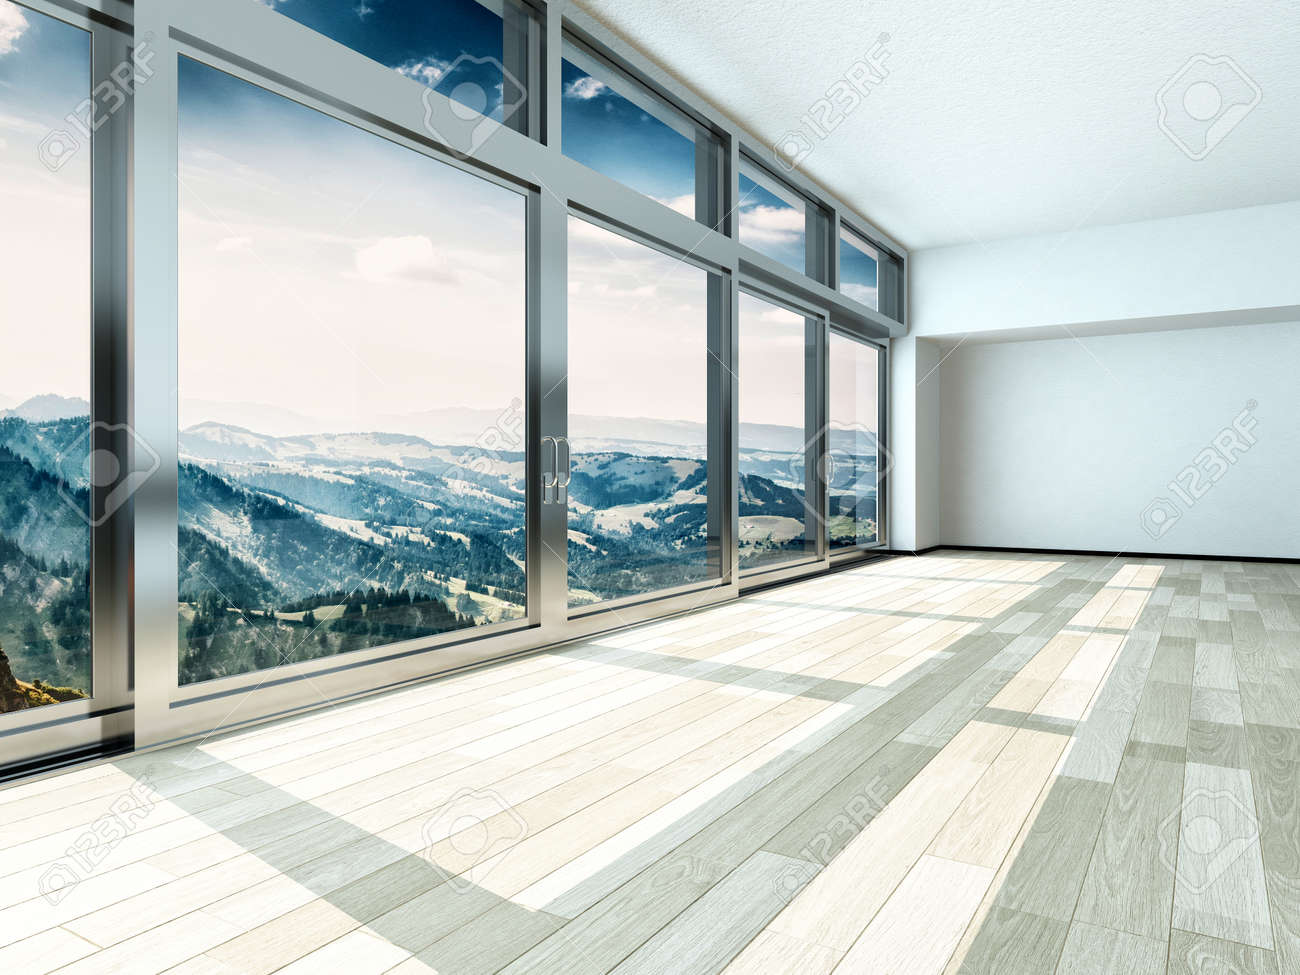 Interior windows architectural - Overlooking Outside View From Large Windows On Metal Frames In Architectural Interior Design Stock Photo